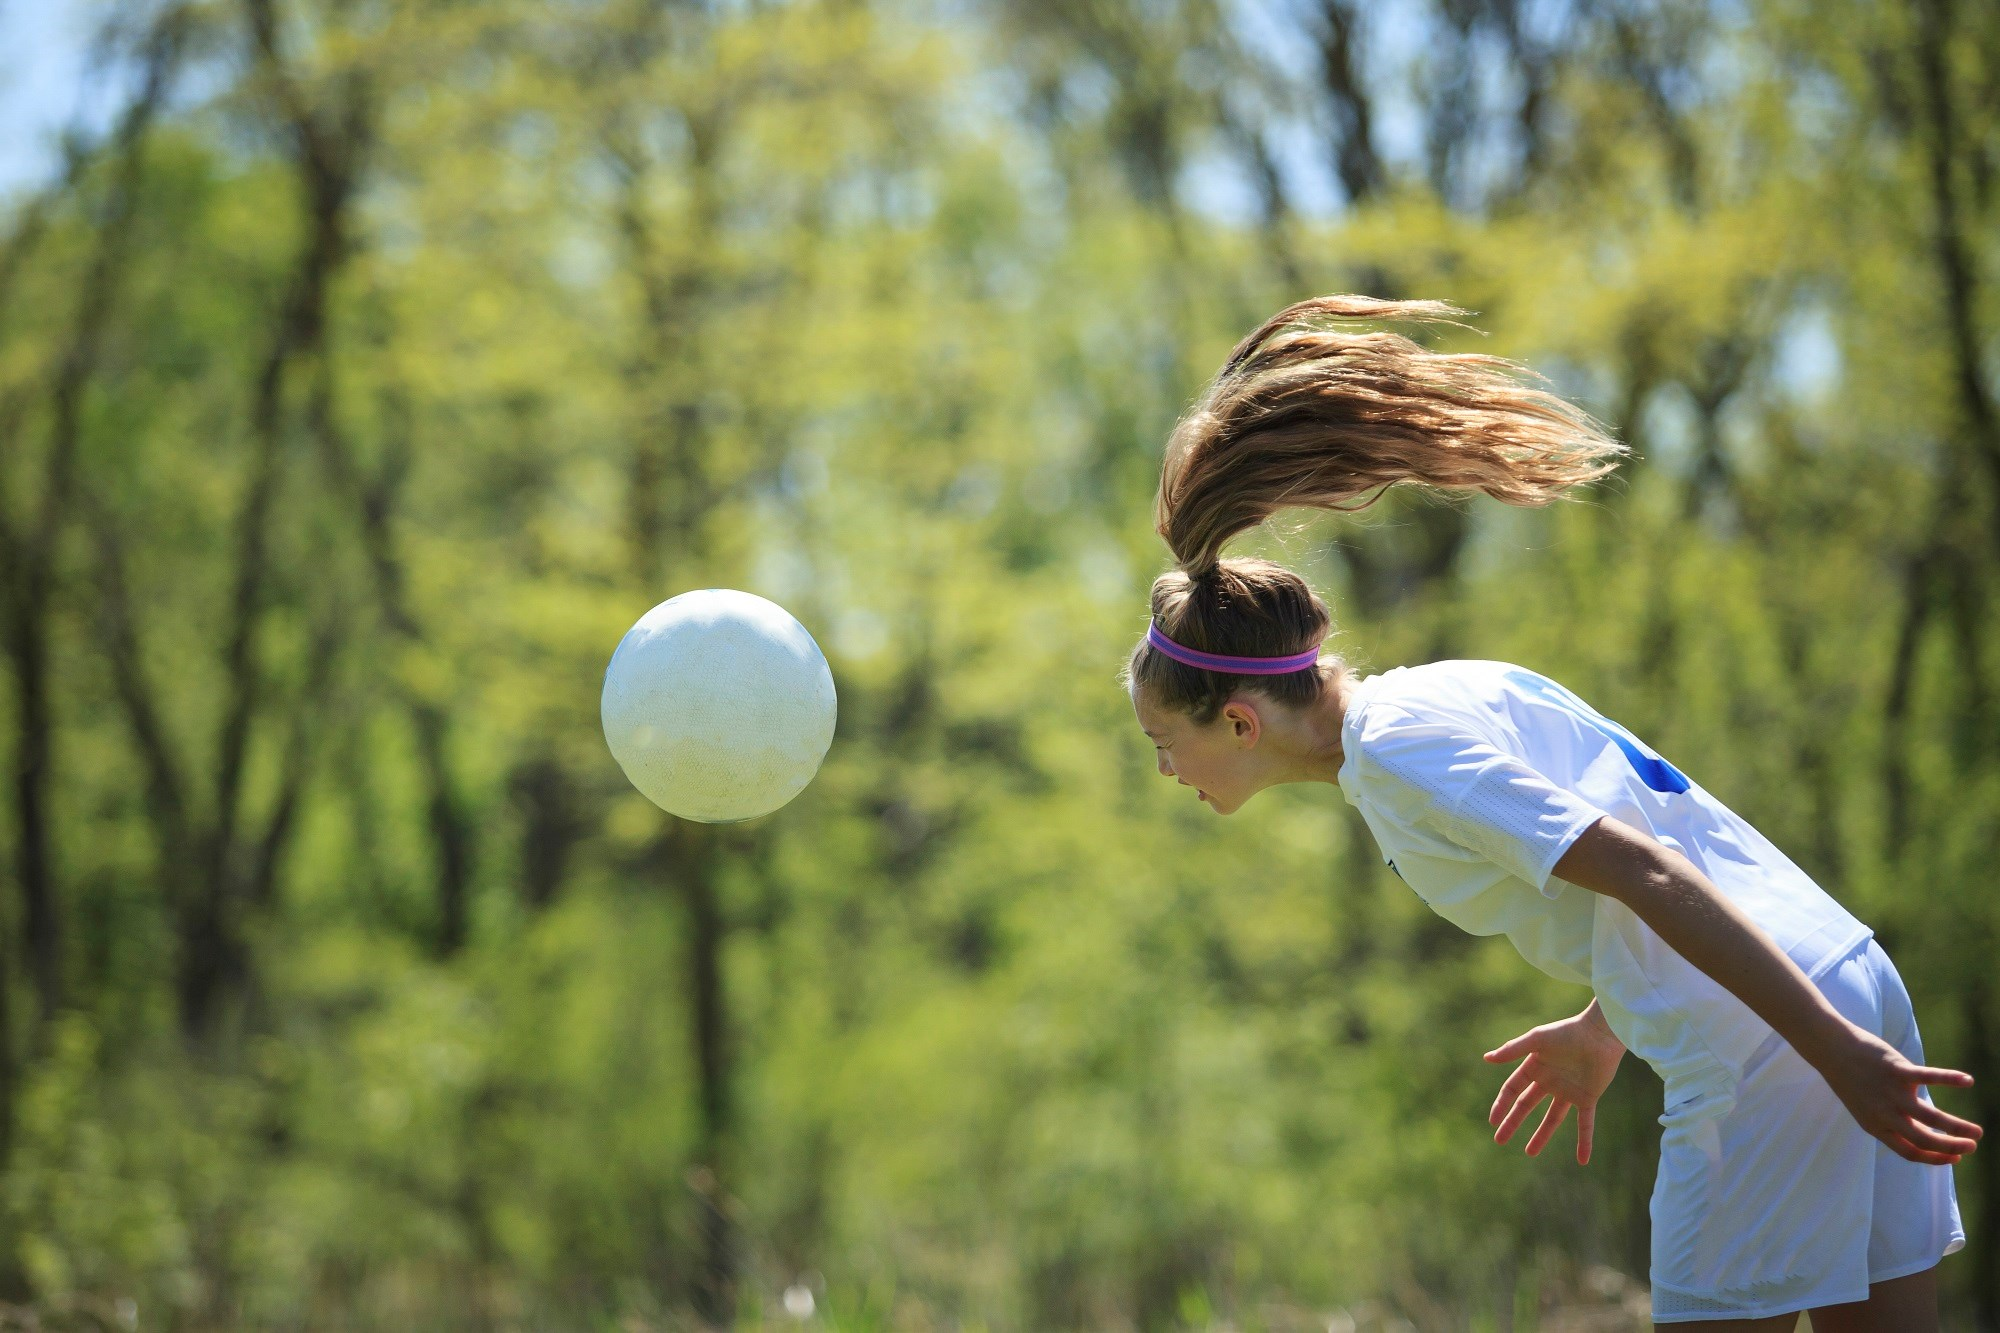 Female soccer players exhibit more widespread evidence of microstructural white matter alteration than males, despite having similar exposure to heading.